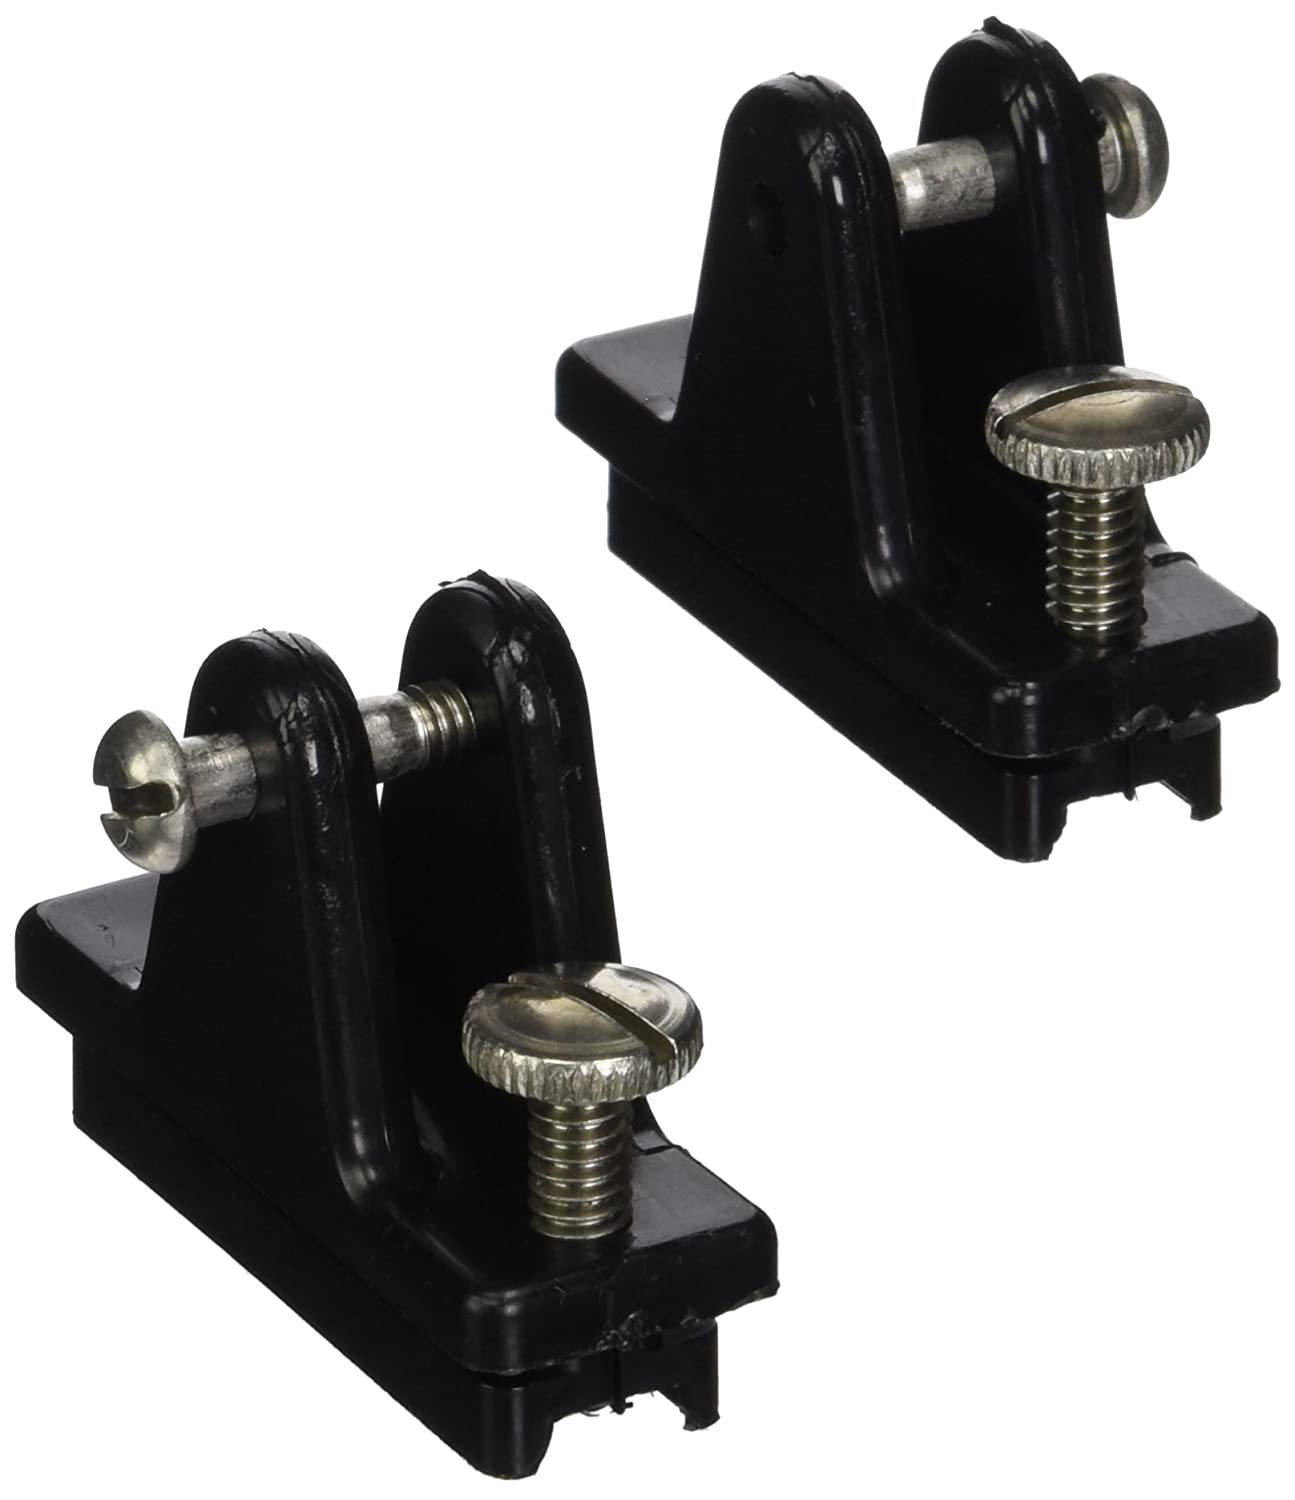 Deck Slide-Black Sea-Dog 273285-1 Track Mount Hinge Fitting